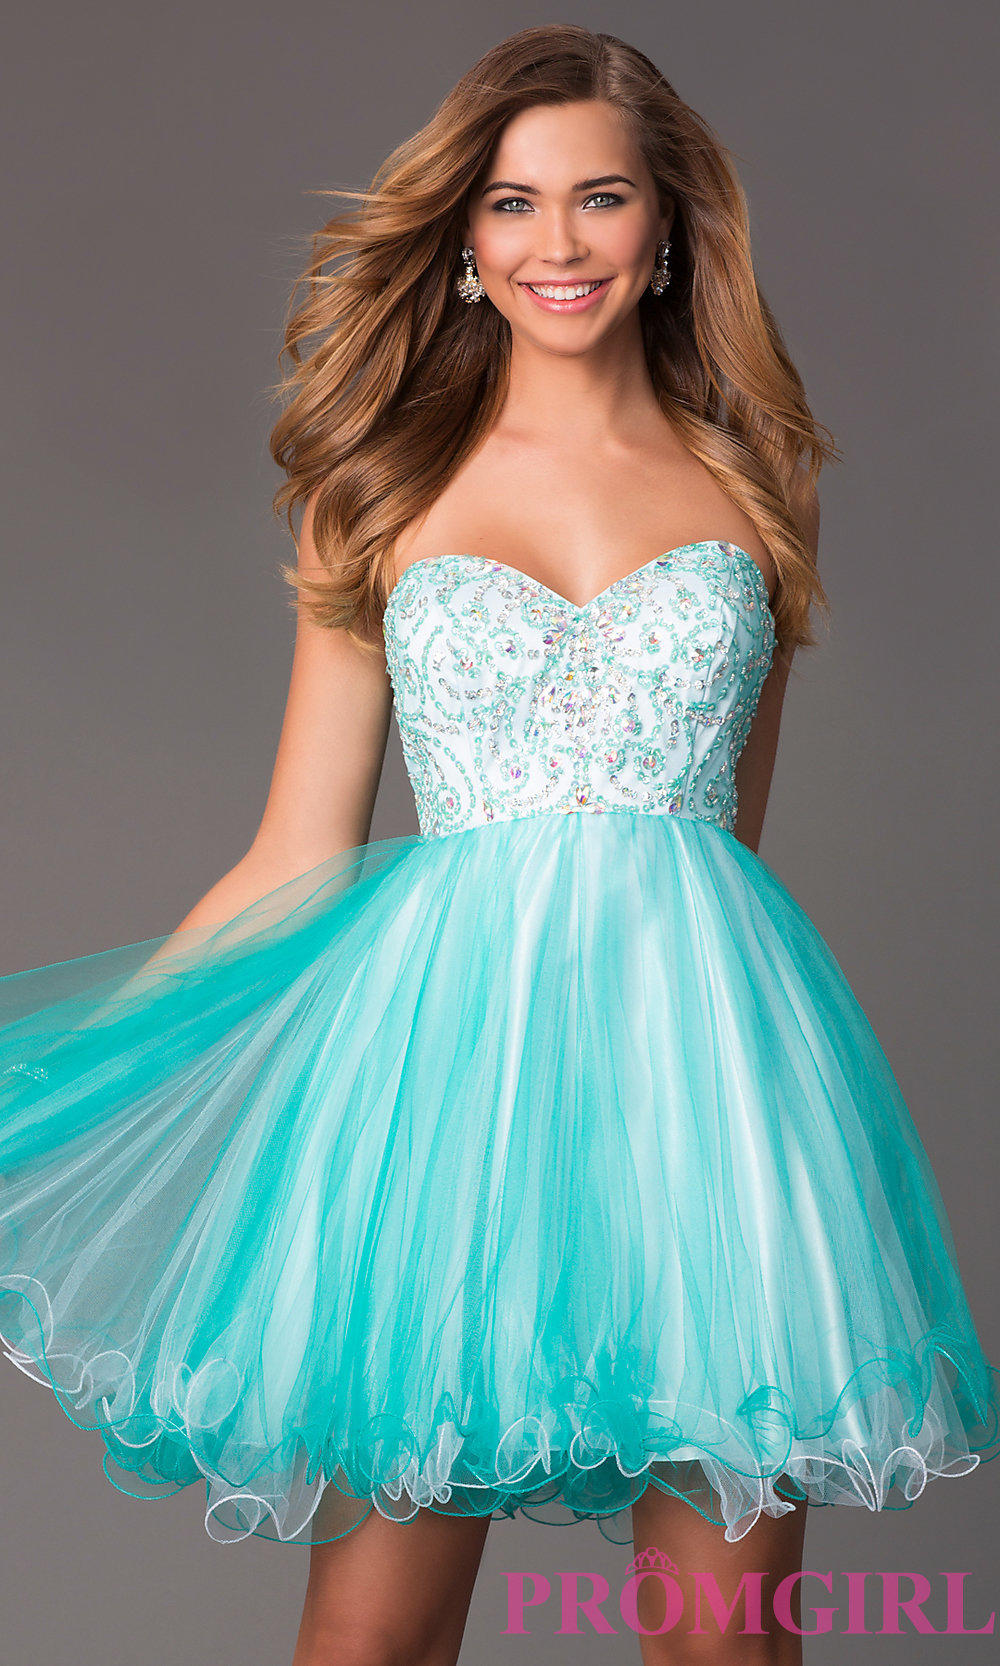 Short Strapless Sweetheart Babydoll Dress from PROMGIRL.COM